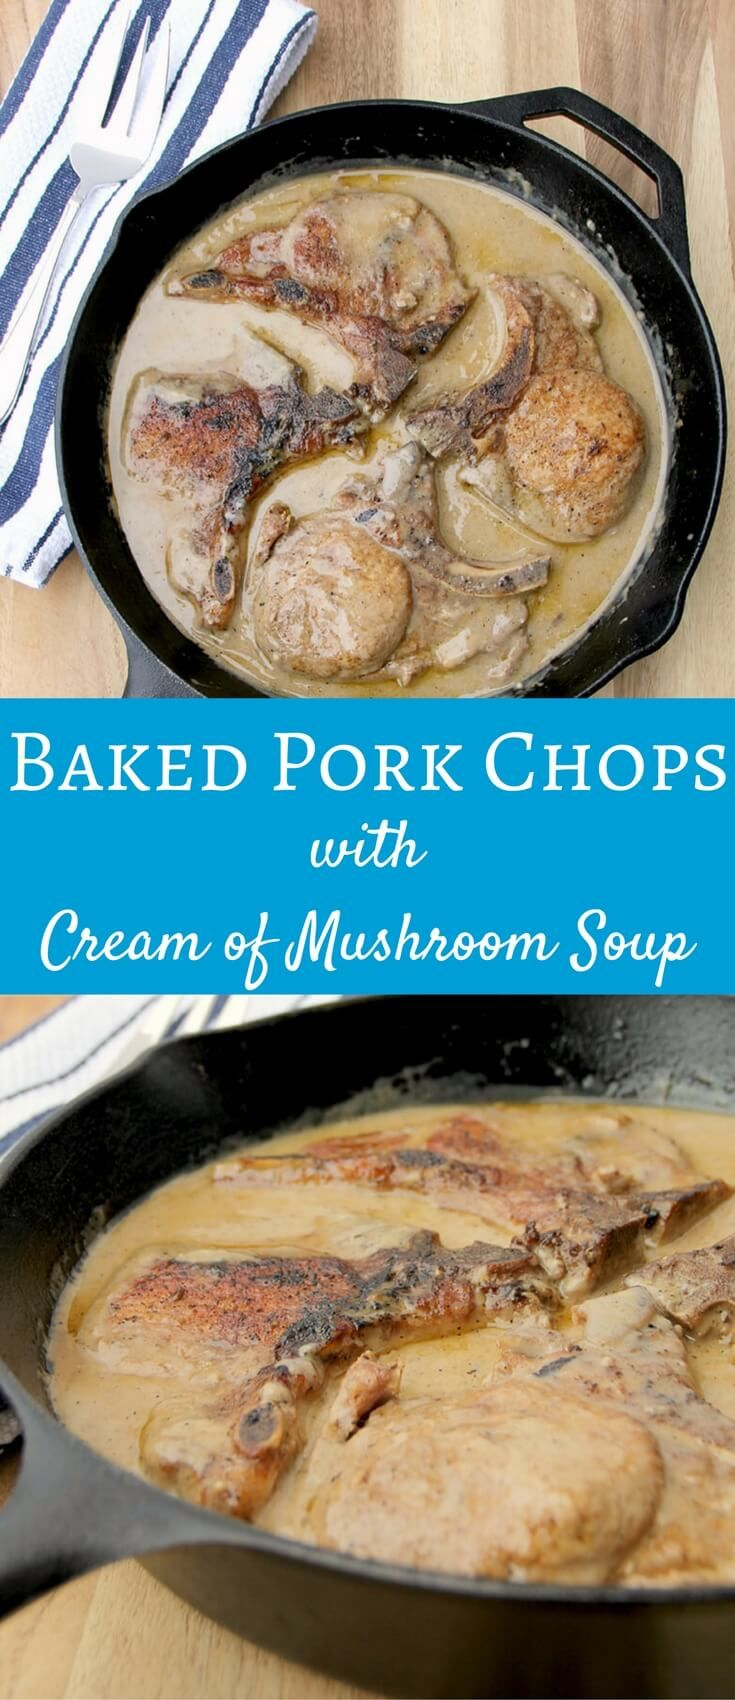 Easy baked pork chops with cream of mushroom soup help you get dinner on the table fast!